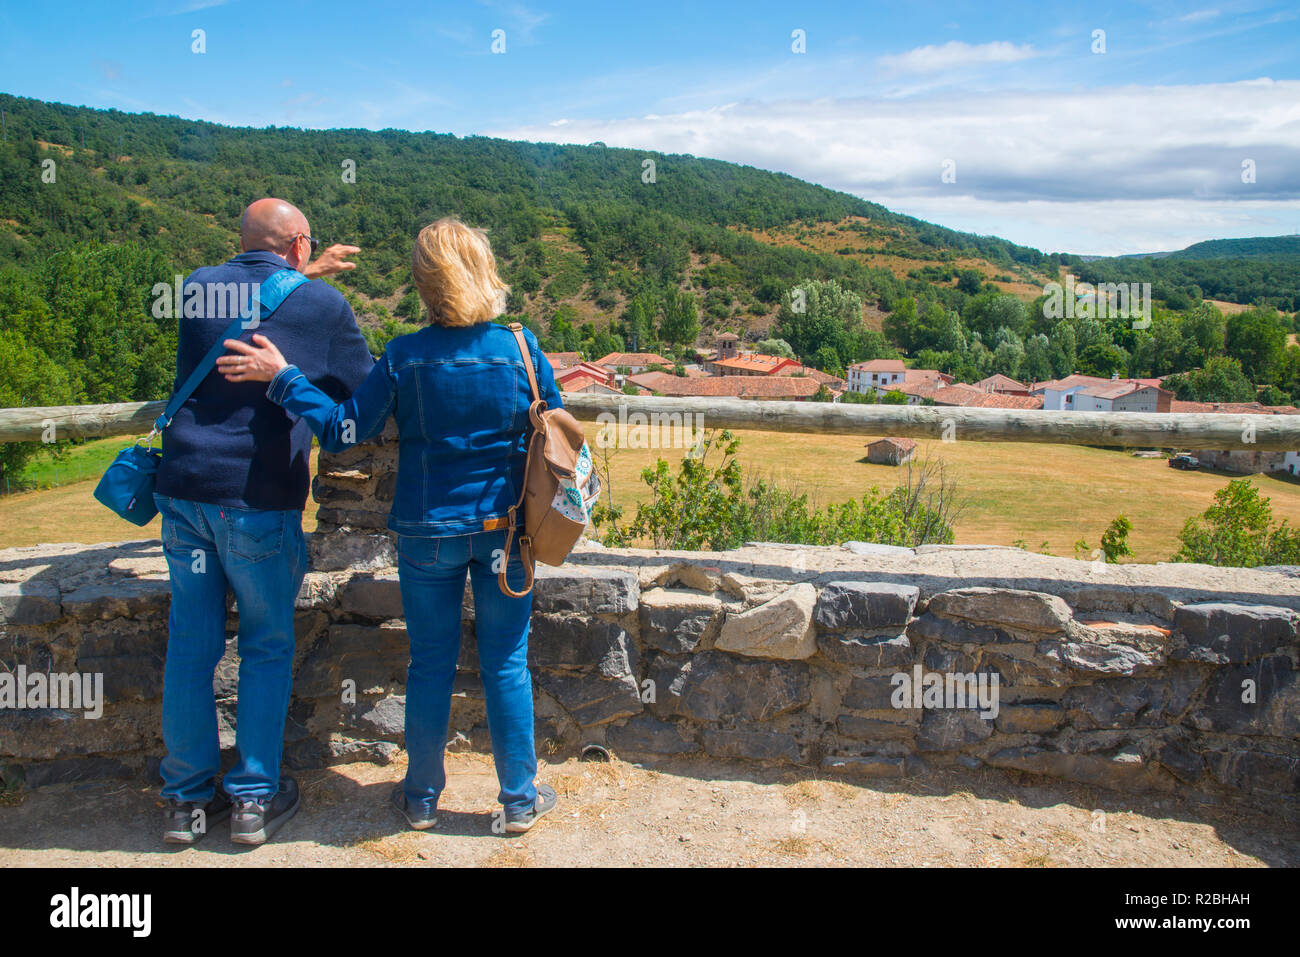 Mature couple at the viewpoint. Ruesga, Palencia province, Spain. - Stock Image